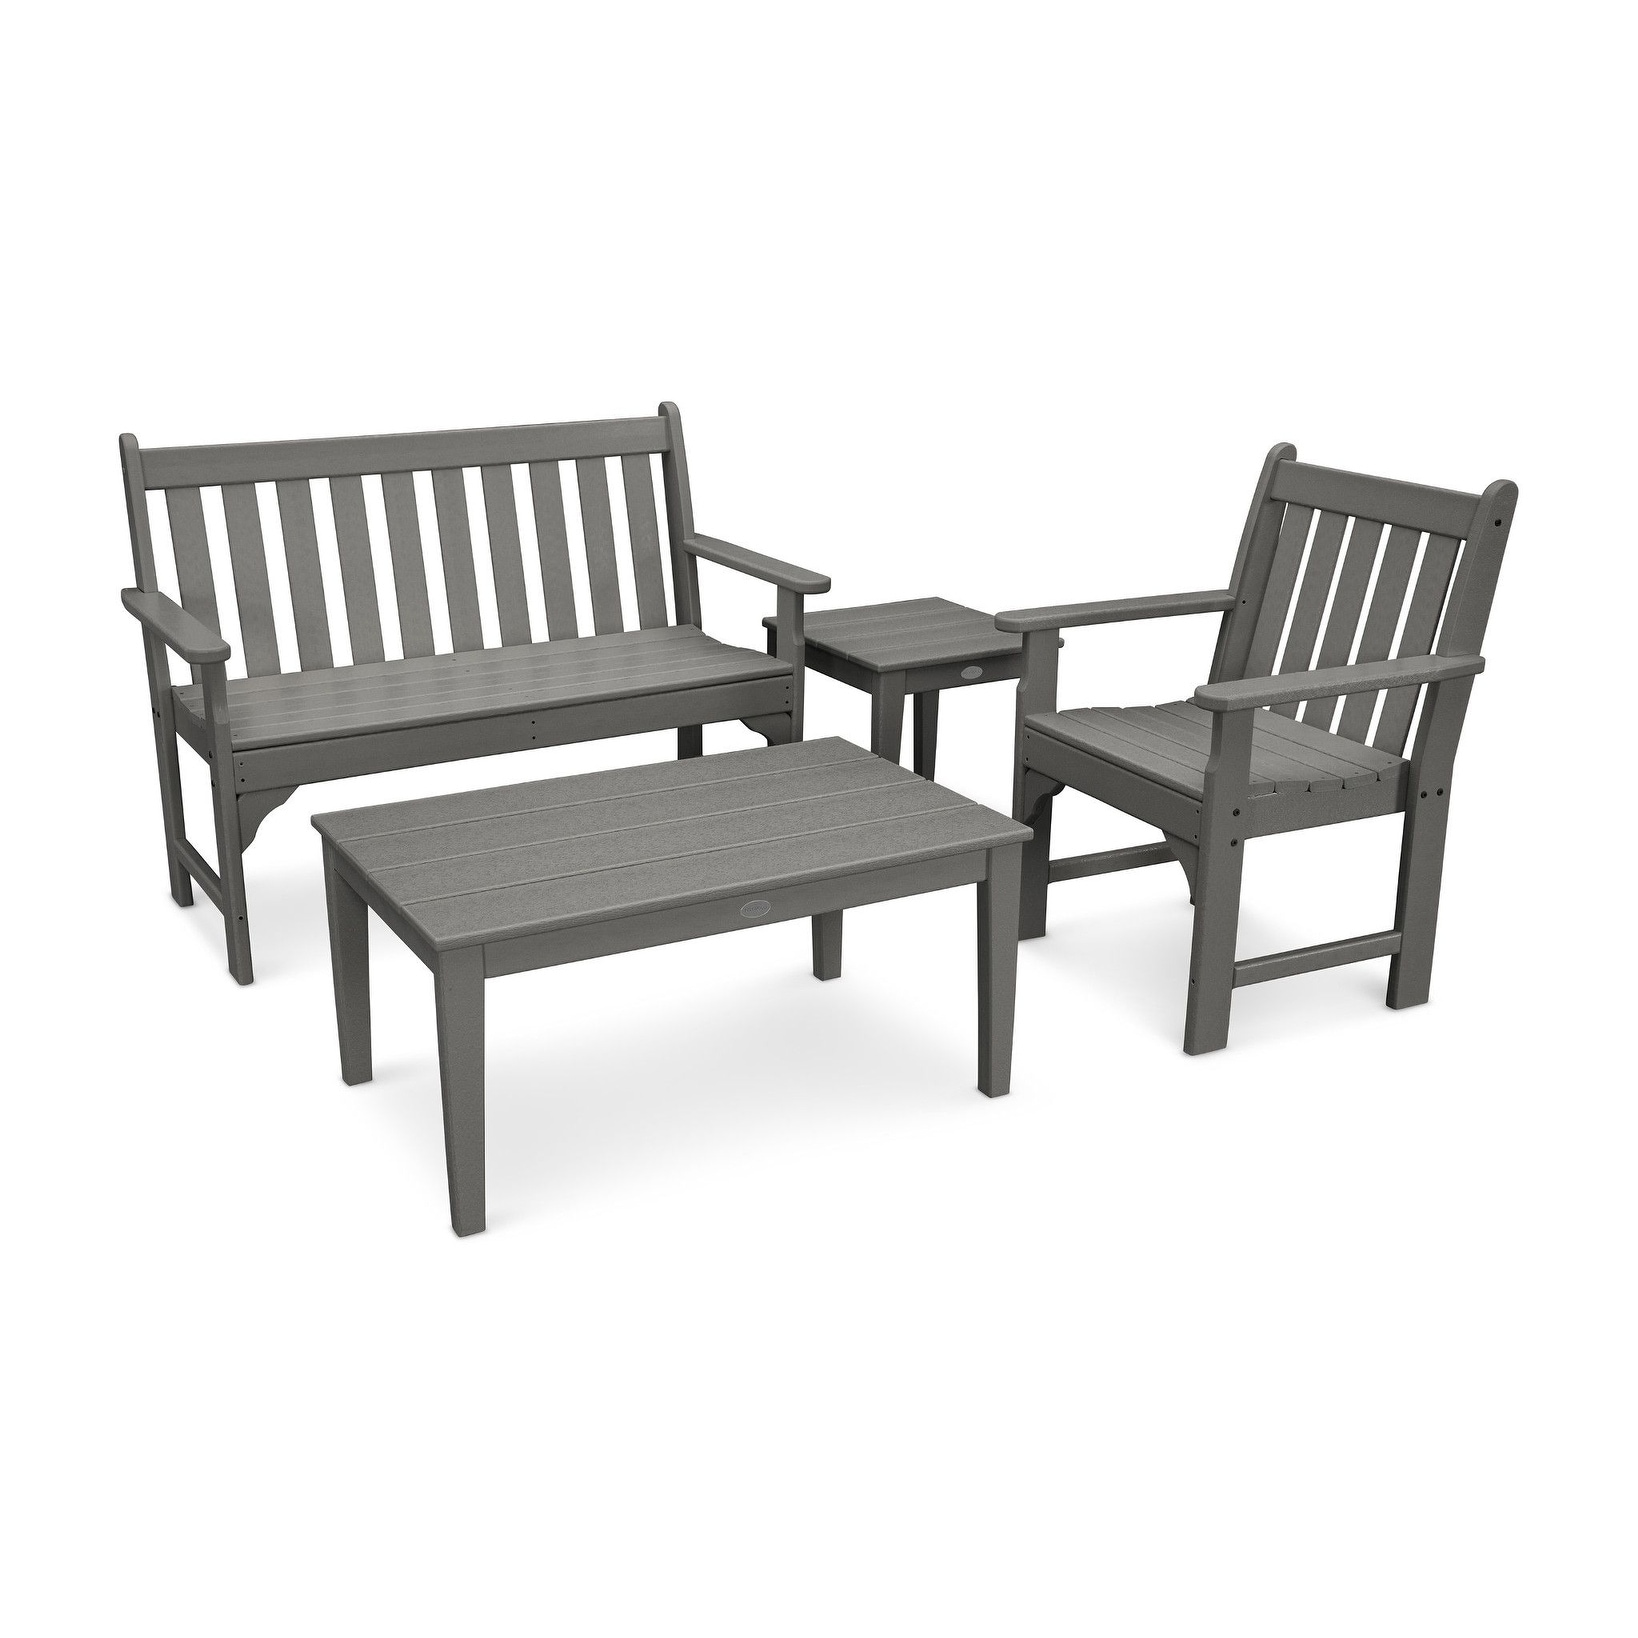 Magnificent Polywood Vineyard 4 Piece Outdoor Bench Chair And Table Set Gamerscity Chair Design For Home Gamerscityorg